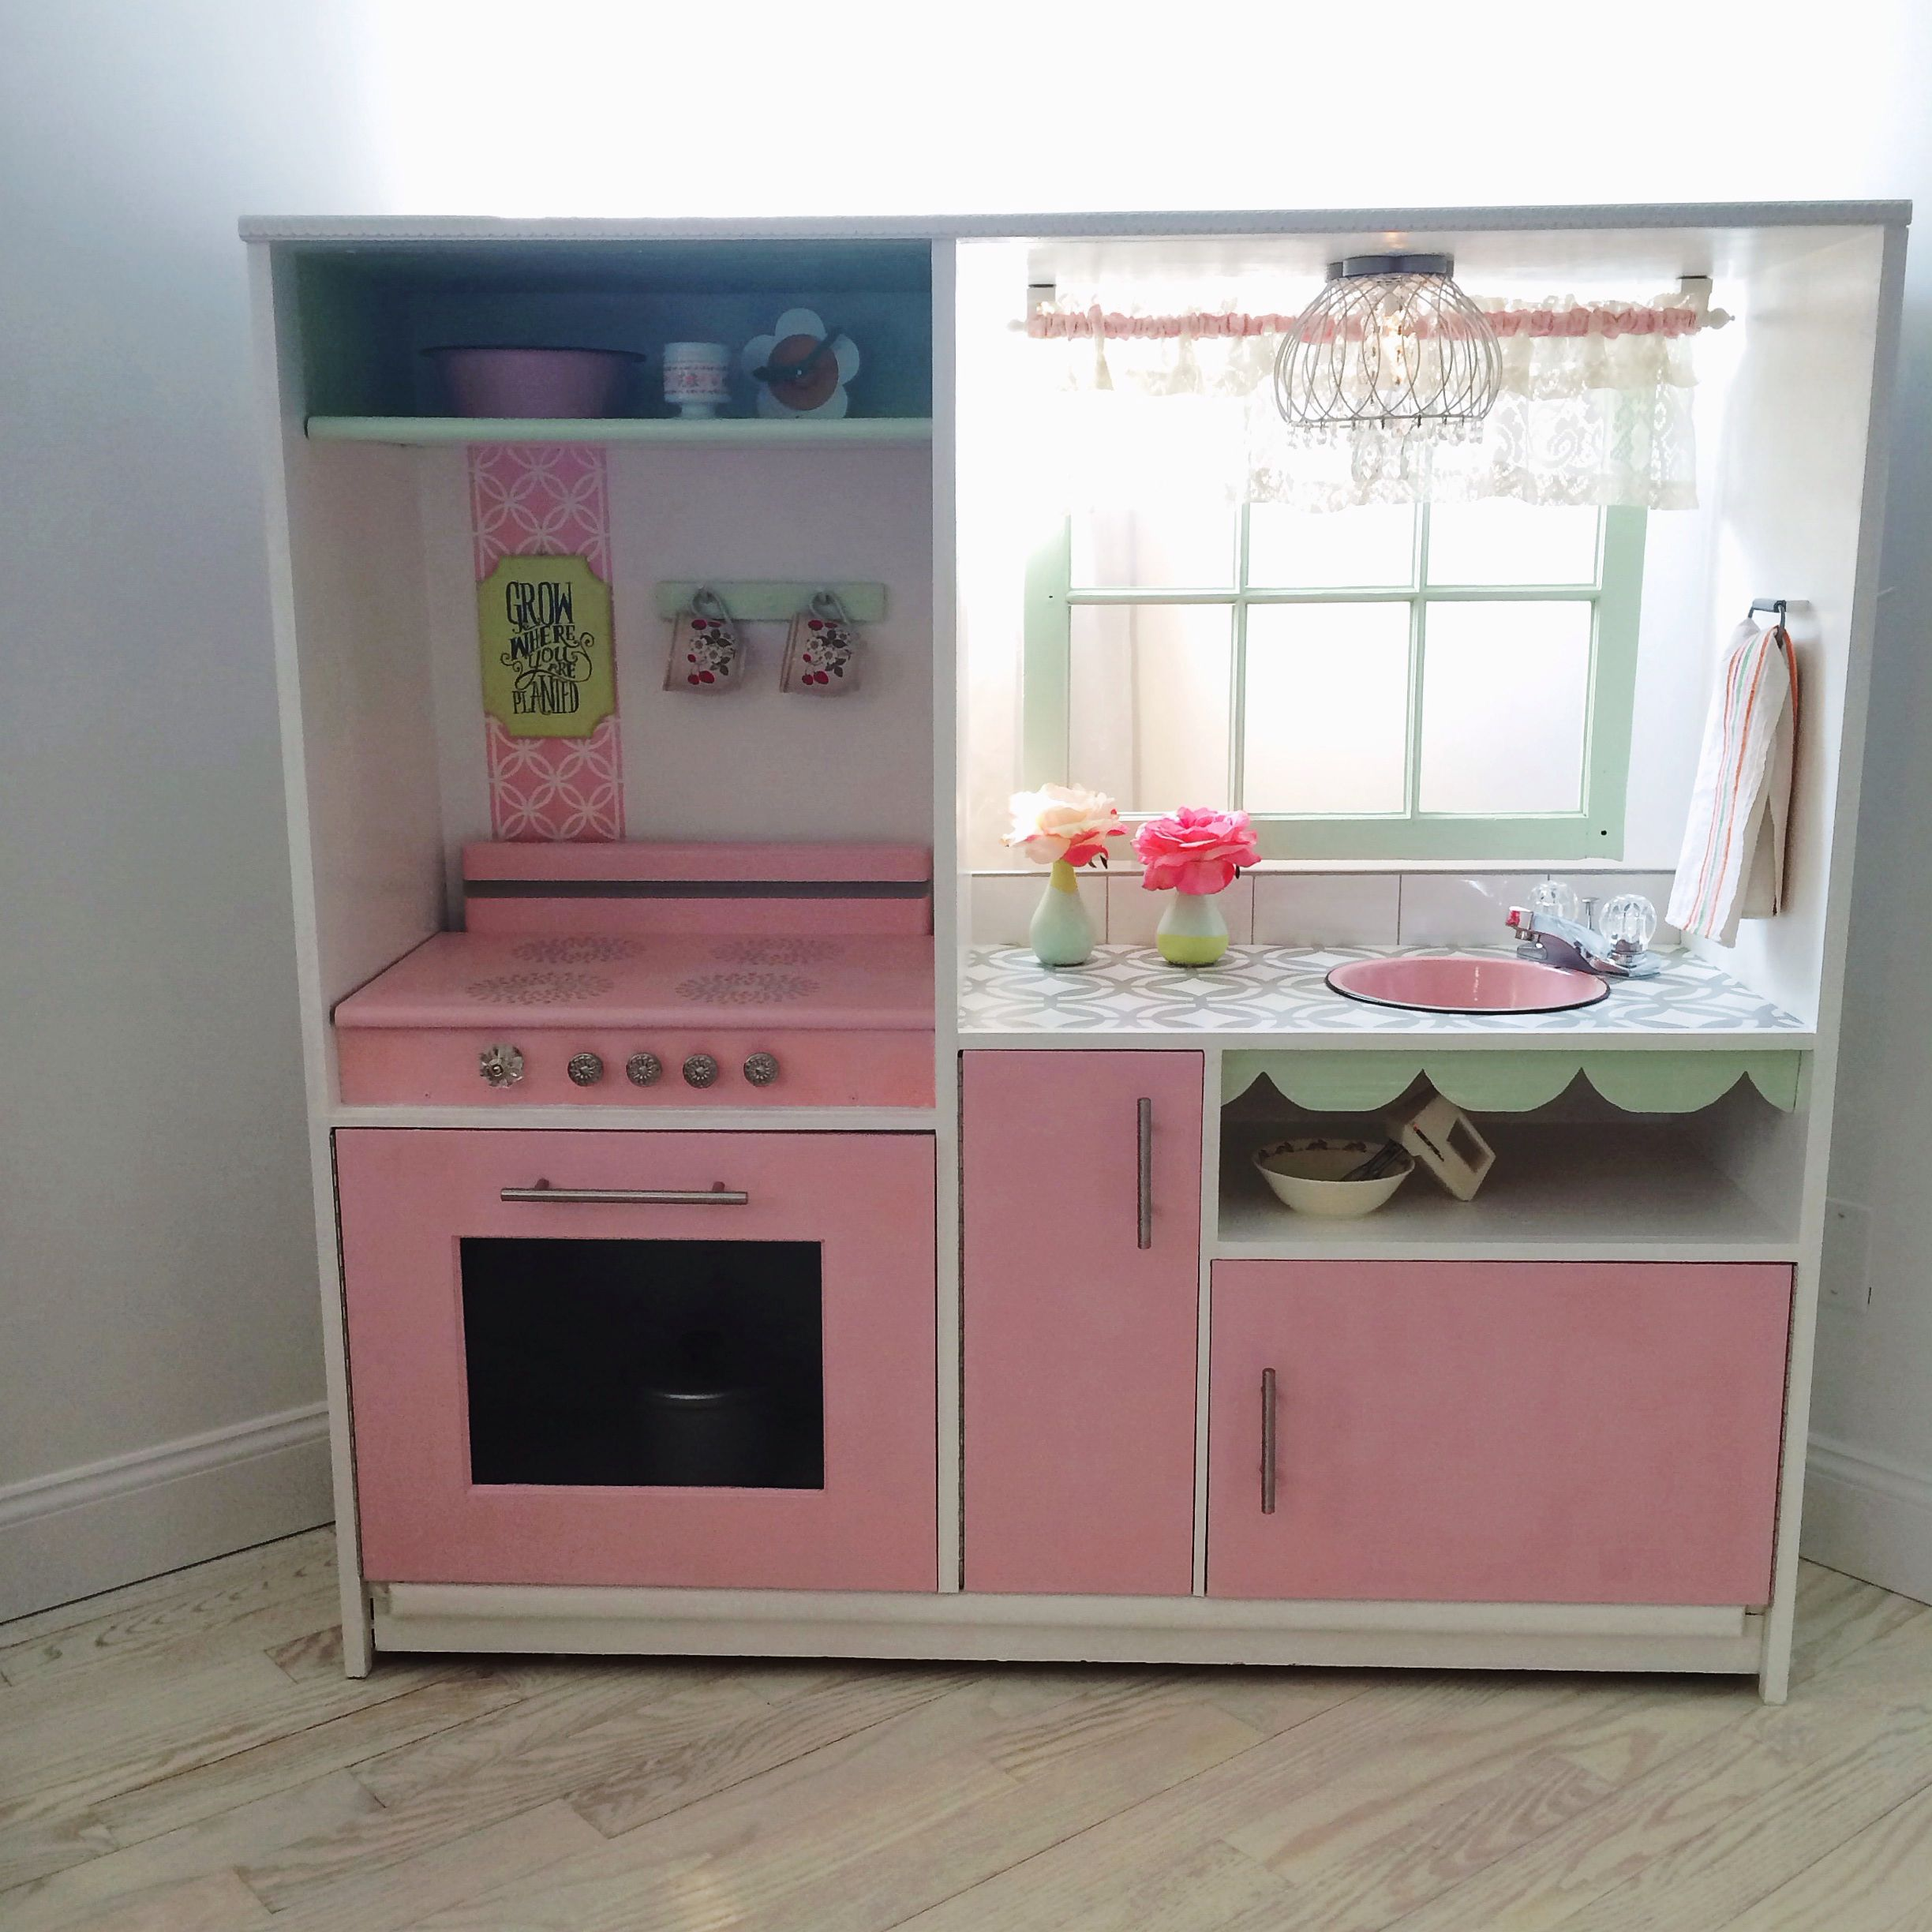 Diy play kitchen made from old entertainment center. Diy